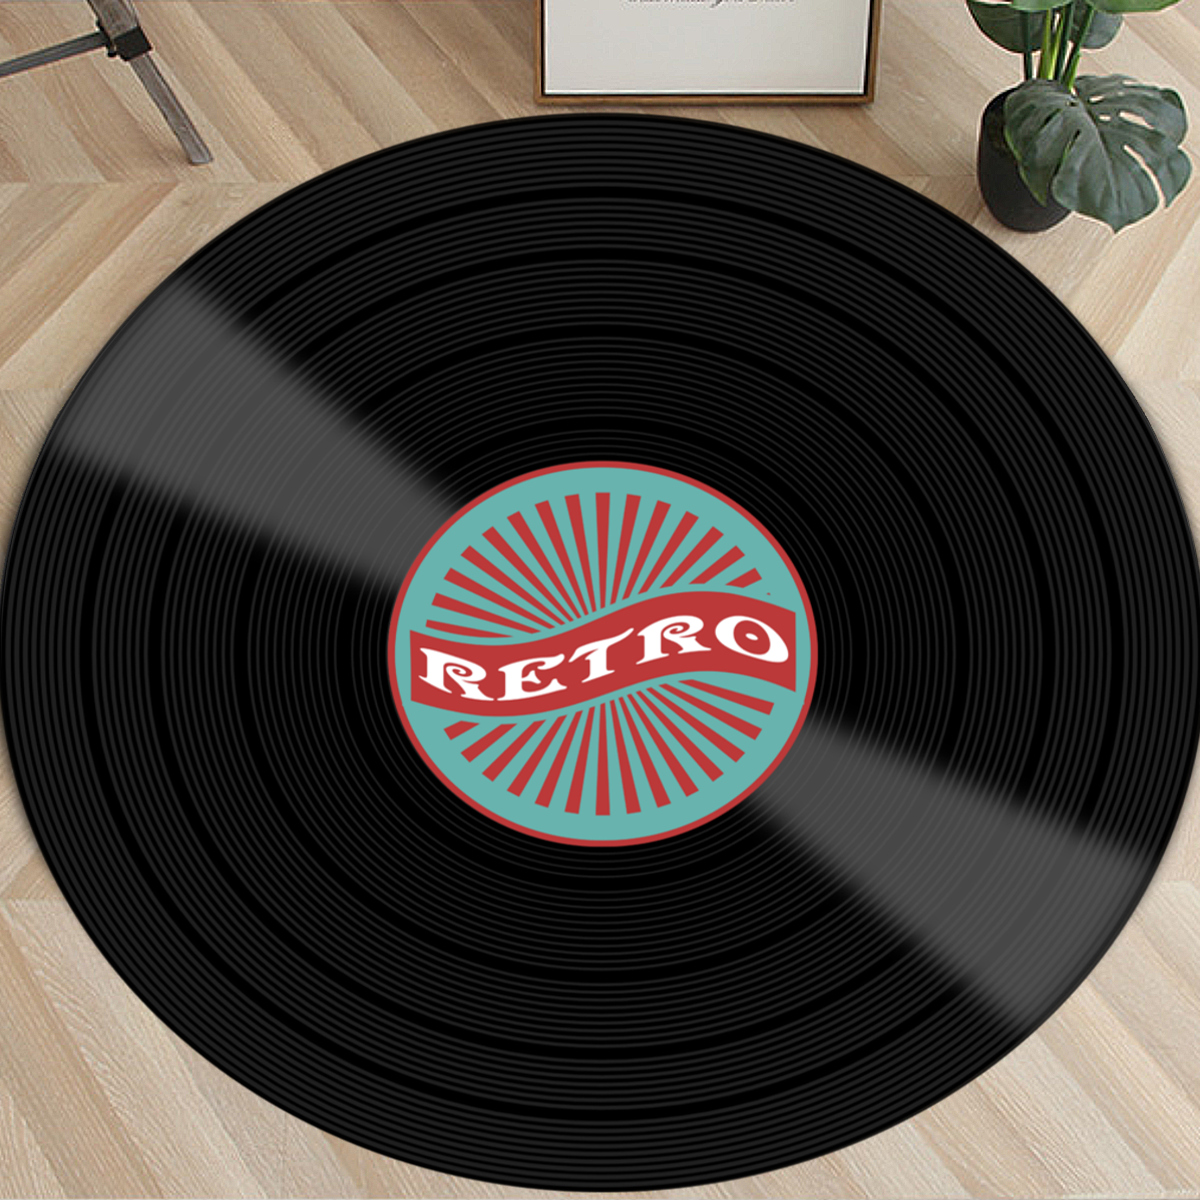 Vinyl Records Innovative Carpet Round Mat Europe Fashion Retro Black Carpet Record Pattern Rug For Living Room Bedroom Floor Mat